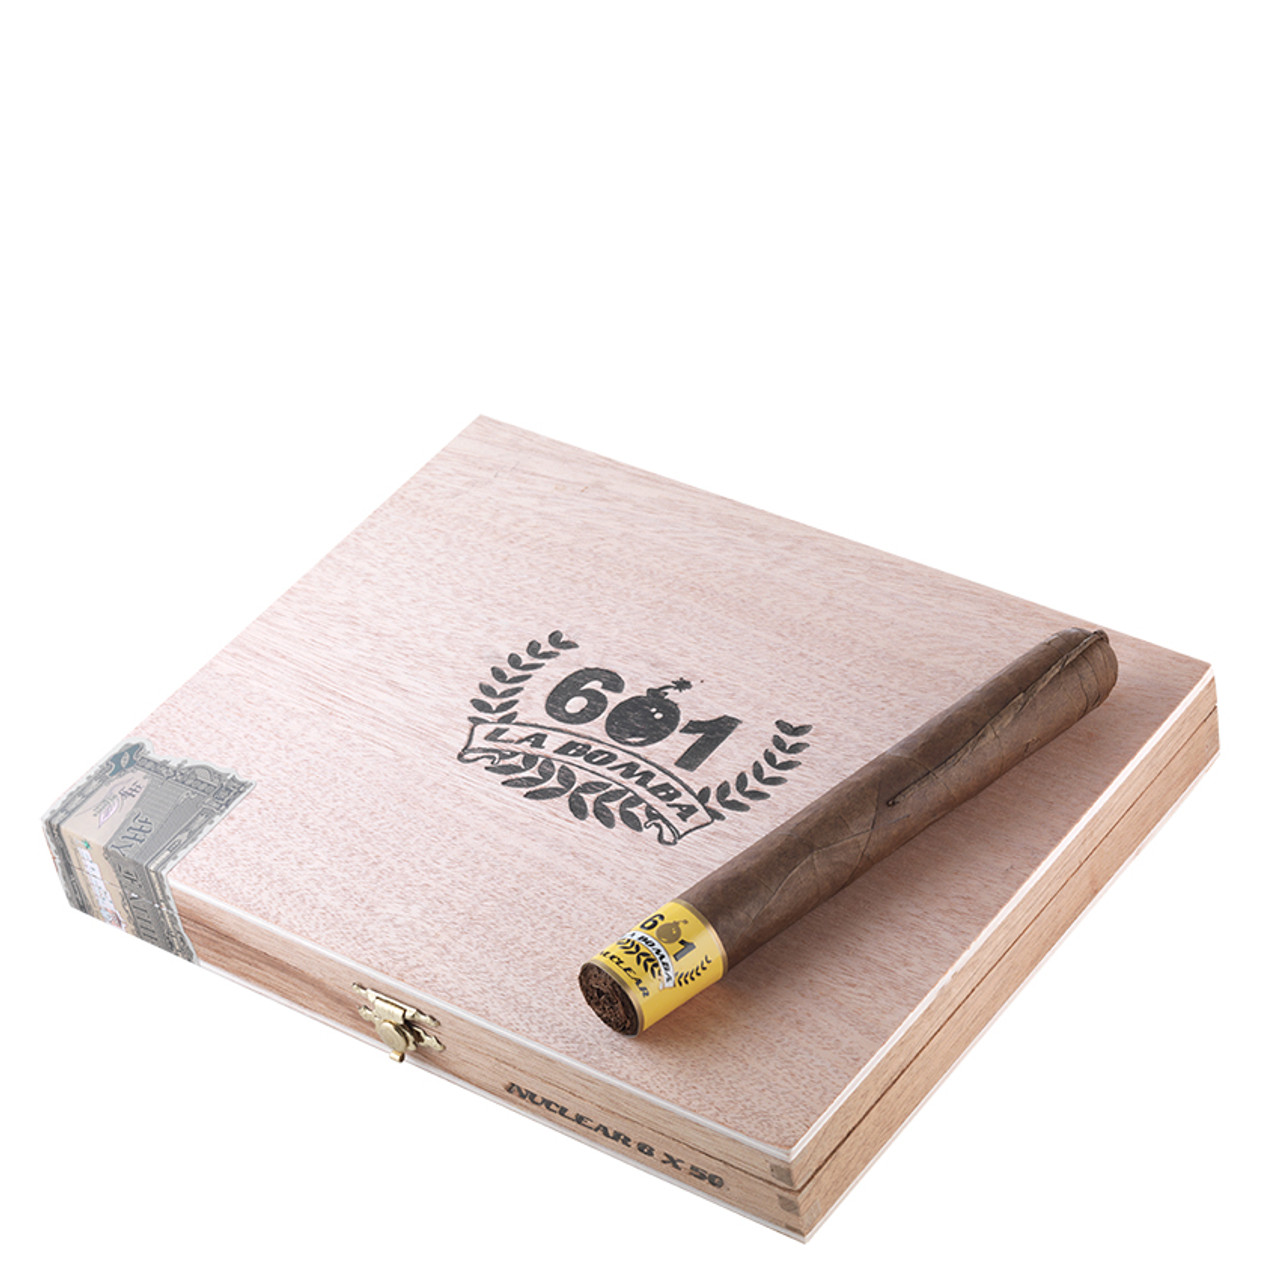 601 La Bomba Nuclear - 6 x 50 Cigars (Box of 10)